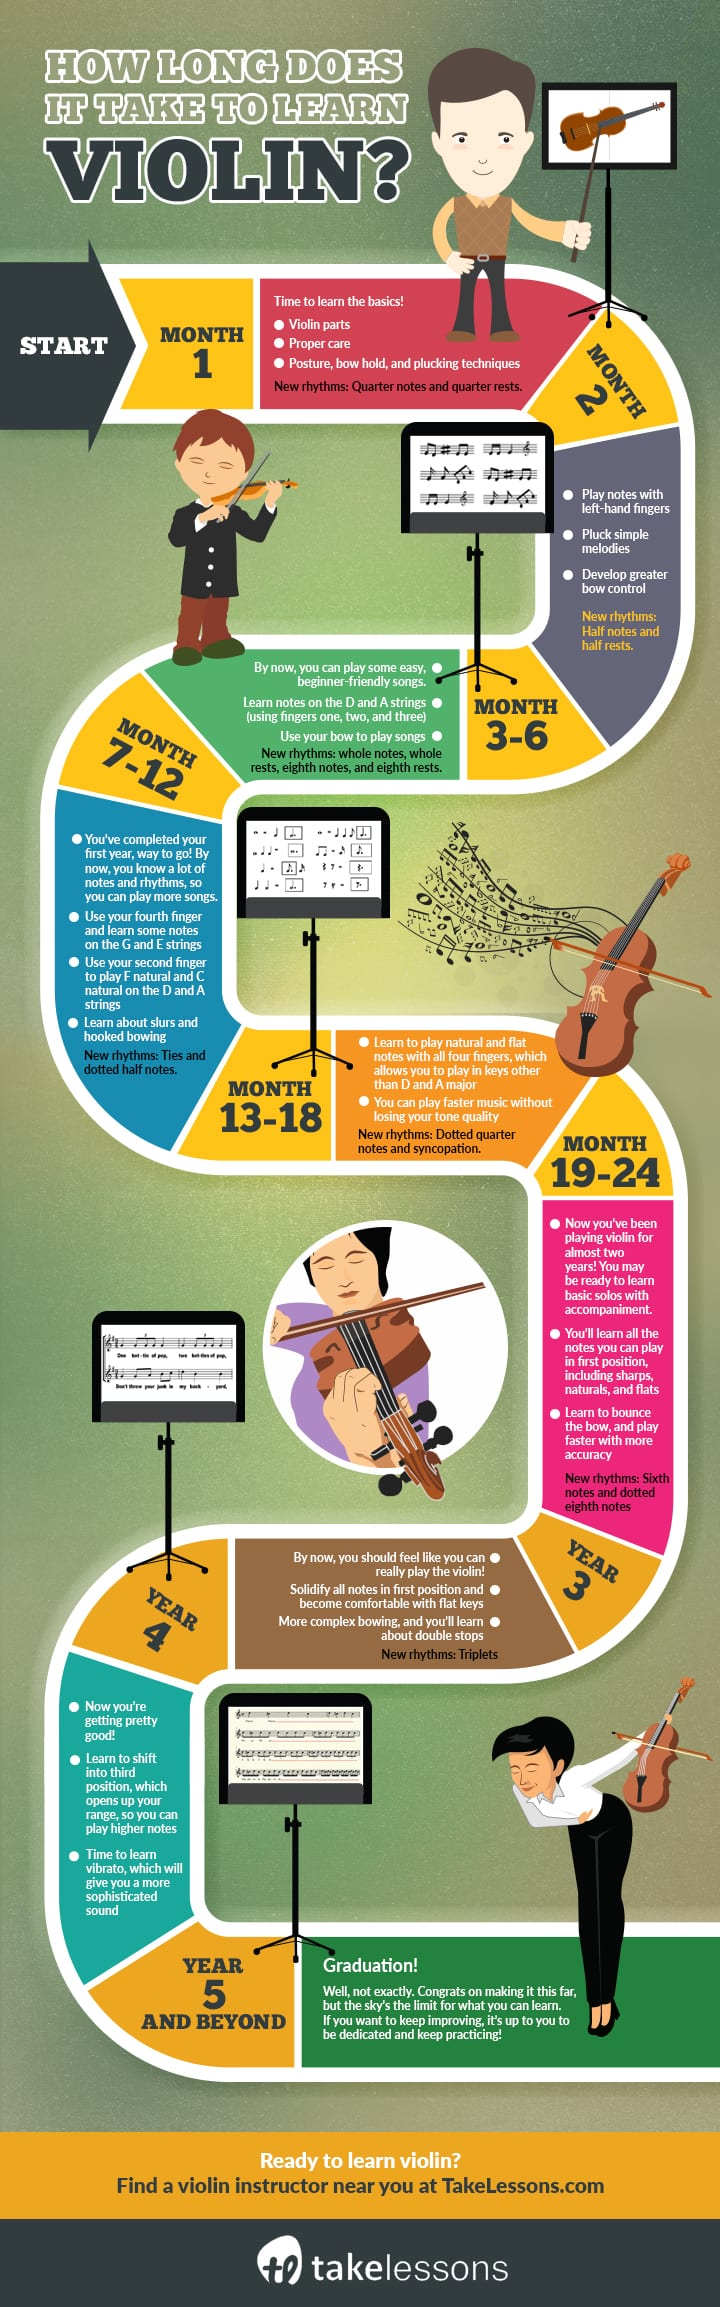 how long does it take to learn violin